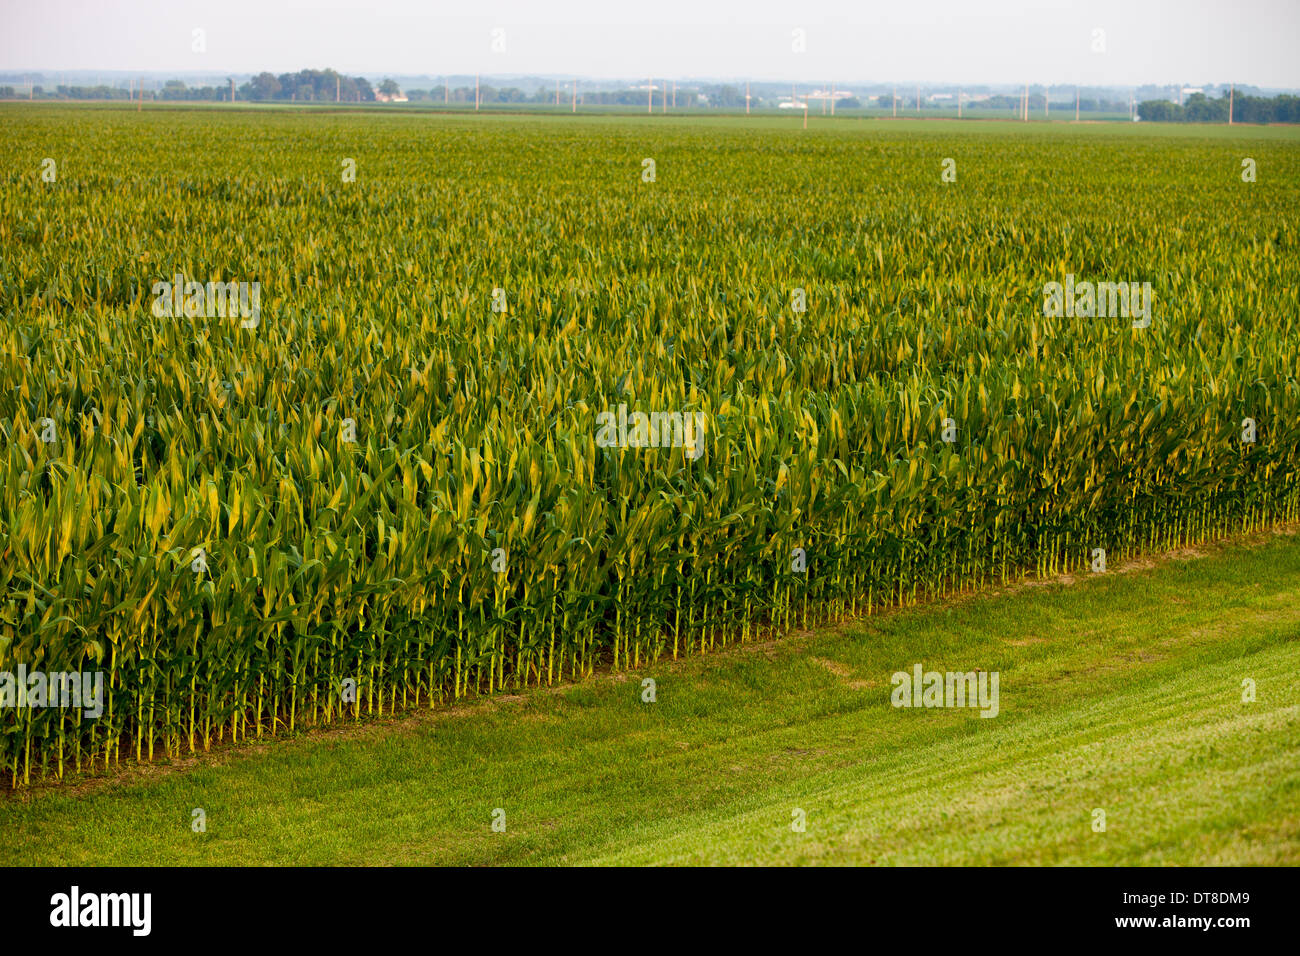 A tall corn field in Central Illinois. - Stock Image